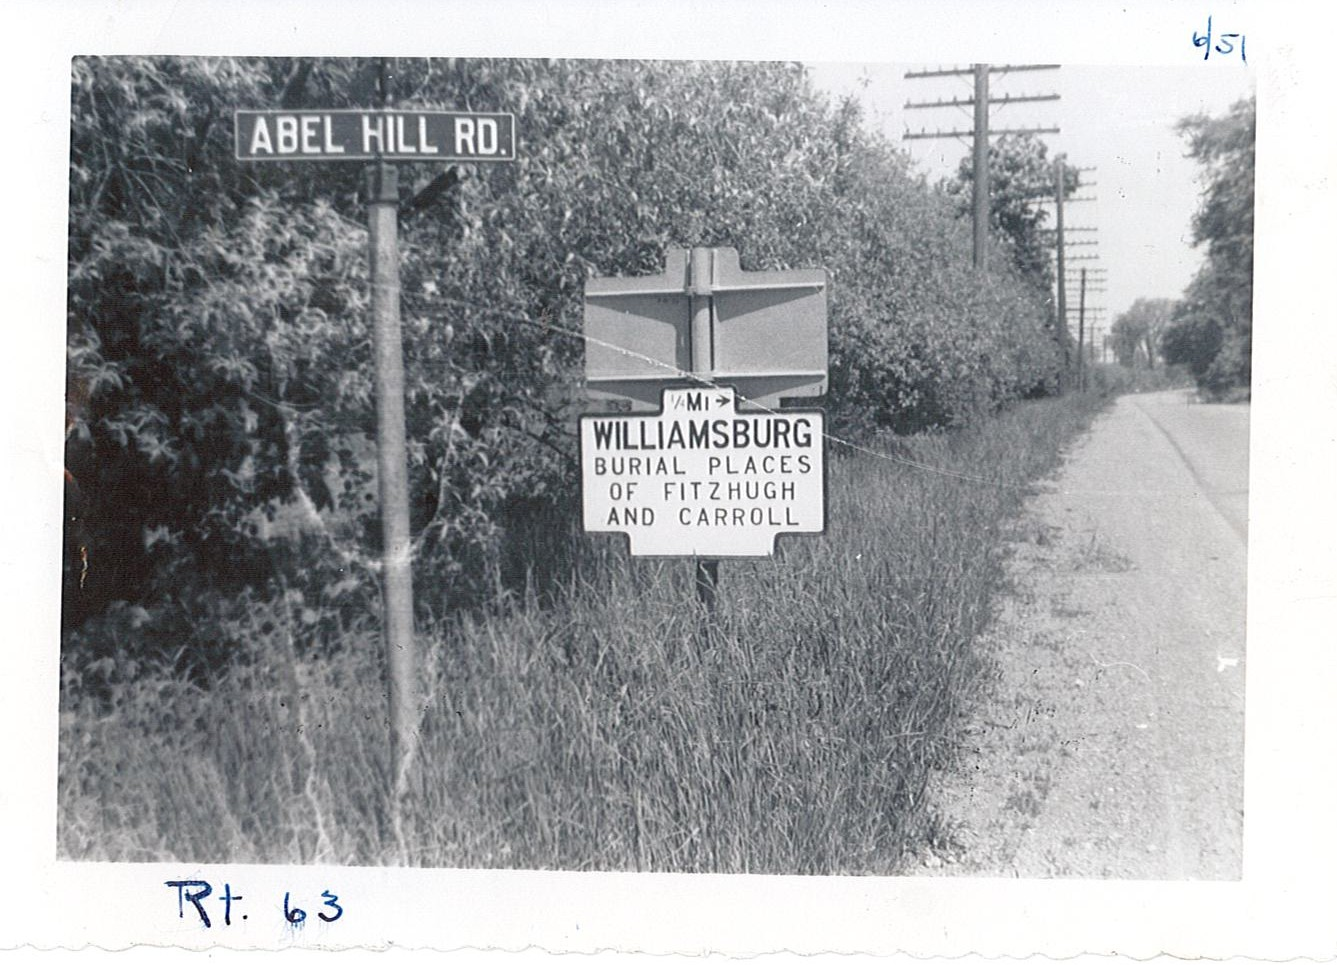 Image of blue and yellow historical marker sign for settlement of Williamsburg next to Abel Hill Road sign